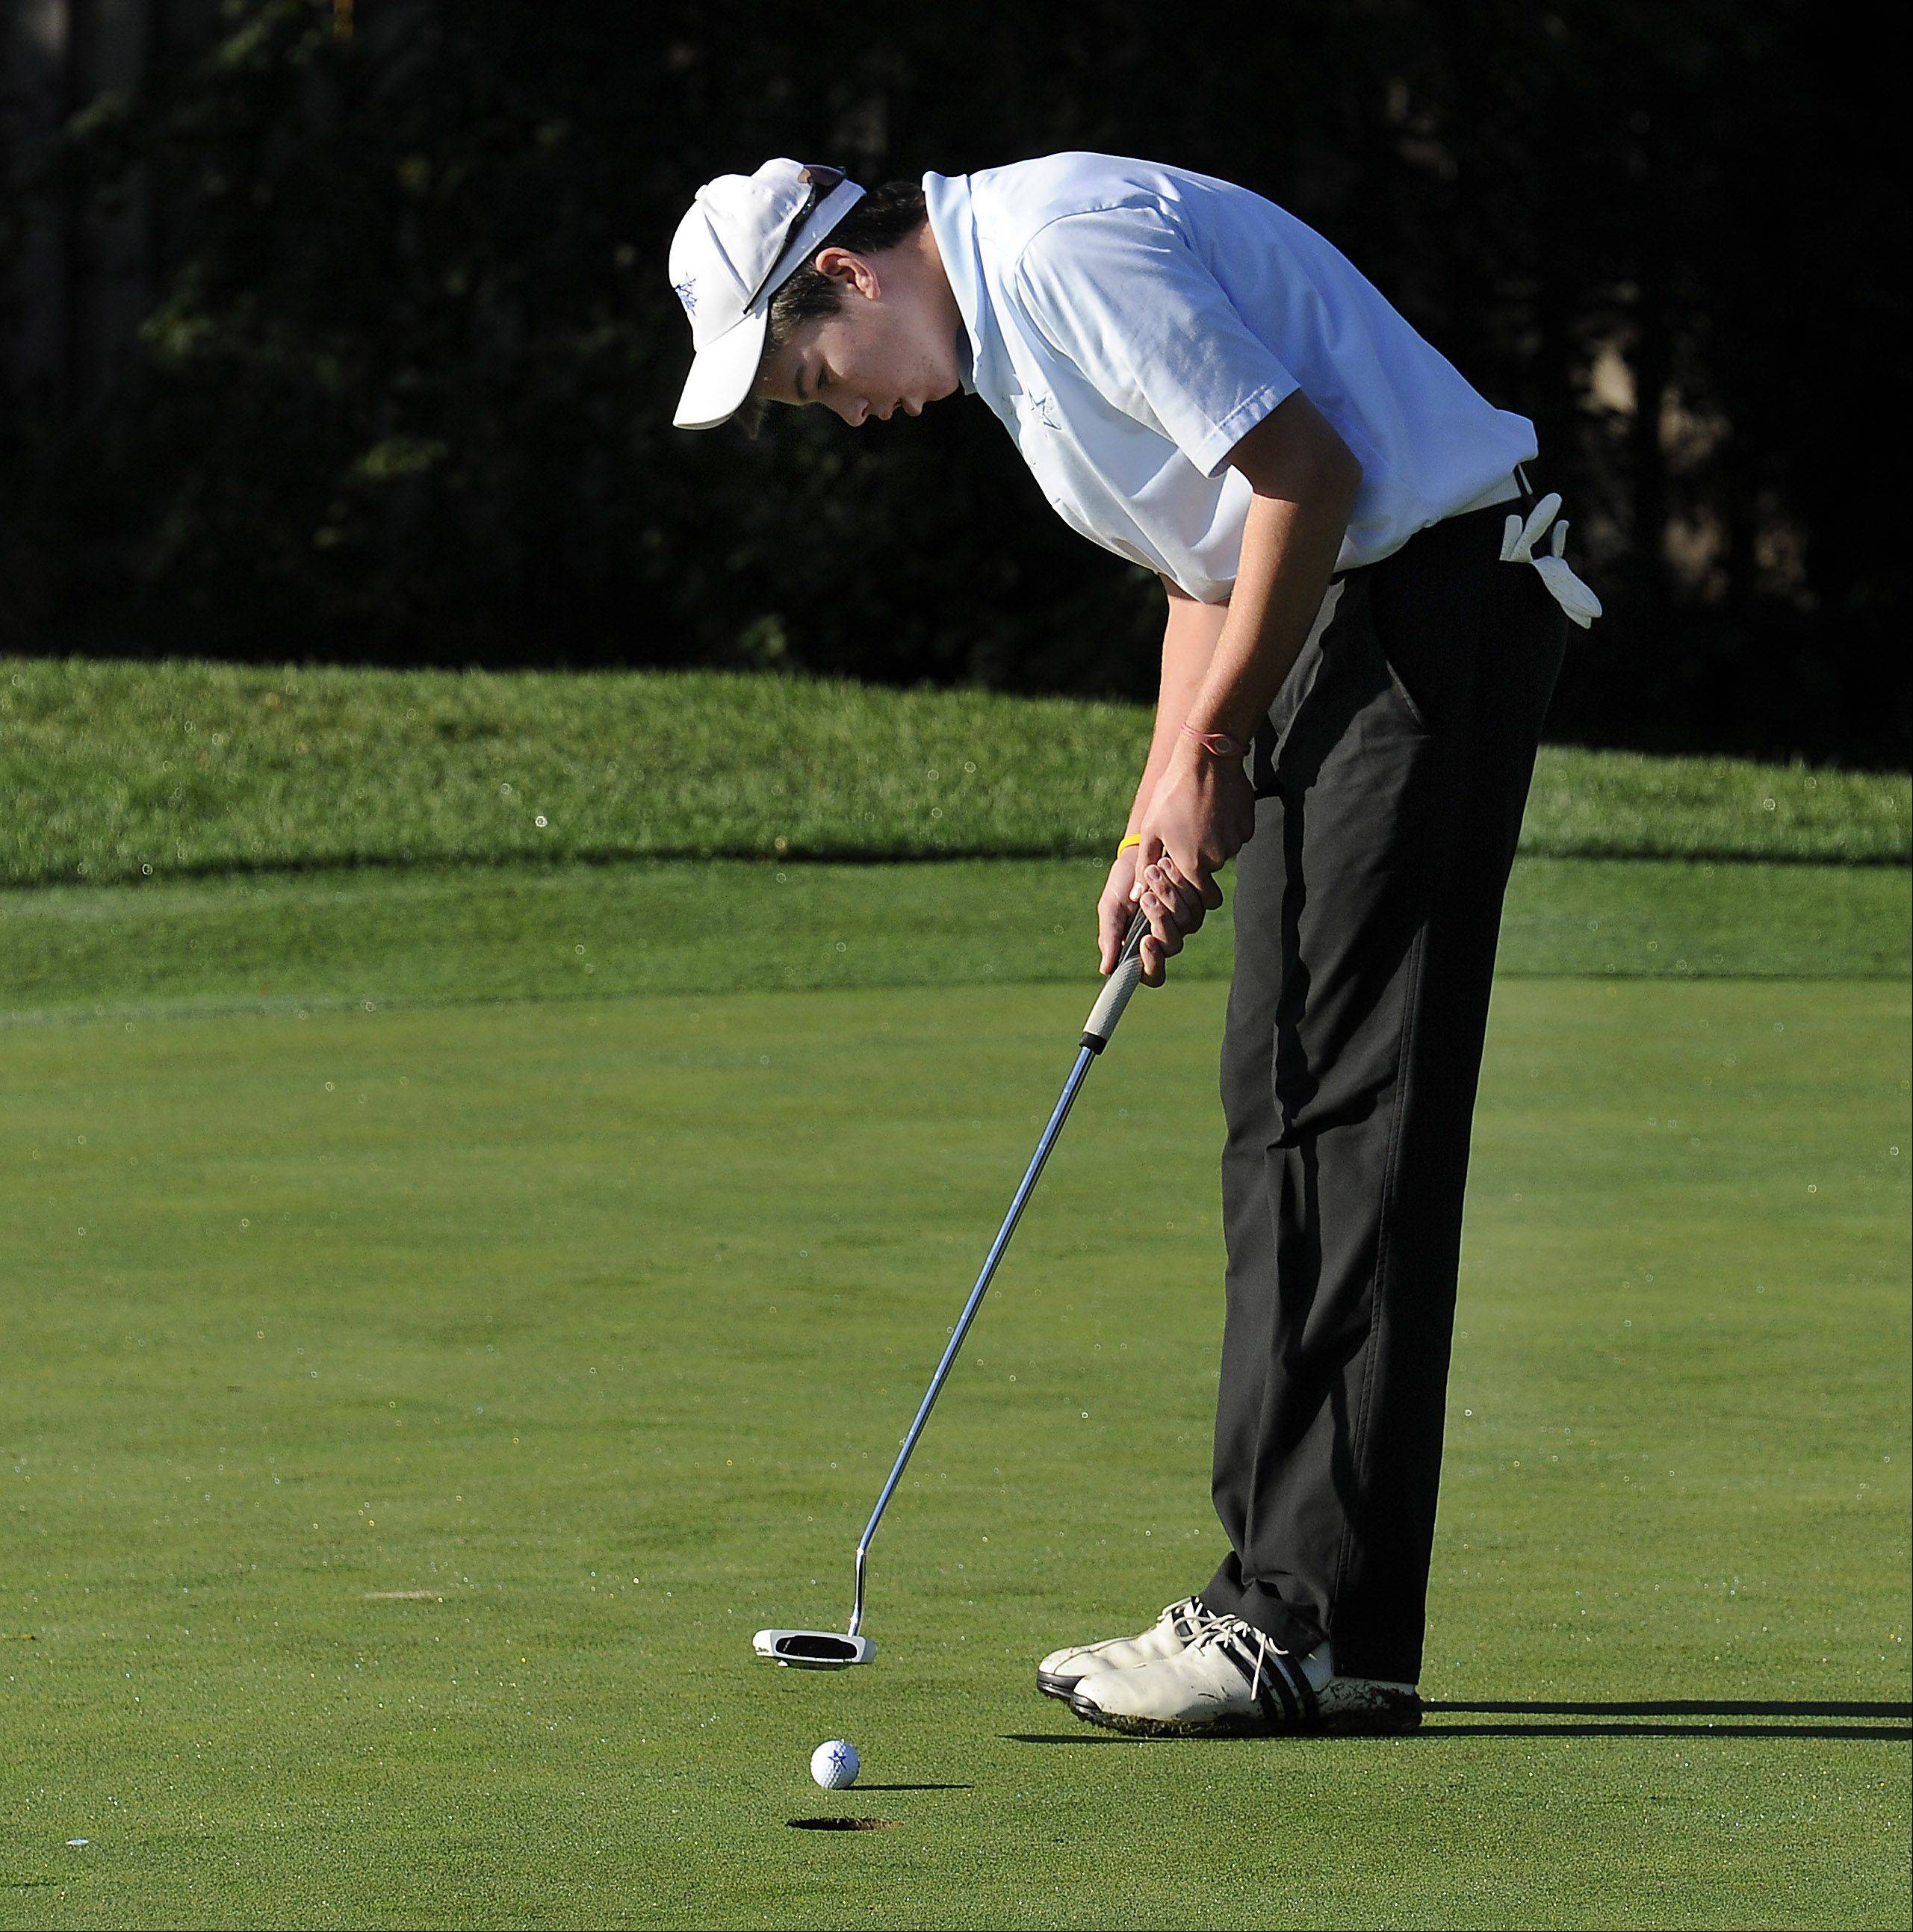 St. Charles North's Dan Sheperd taps in his short putt on the second hole at the Wheeling Invitational on Saturday.